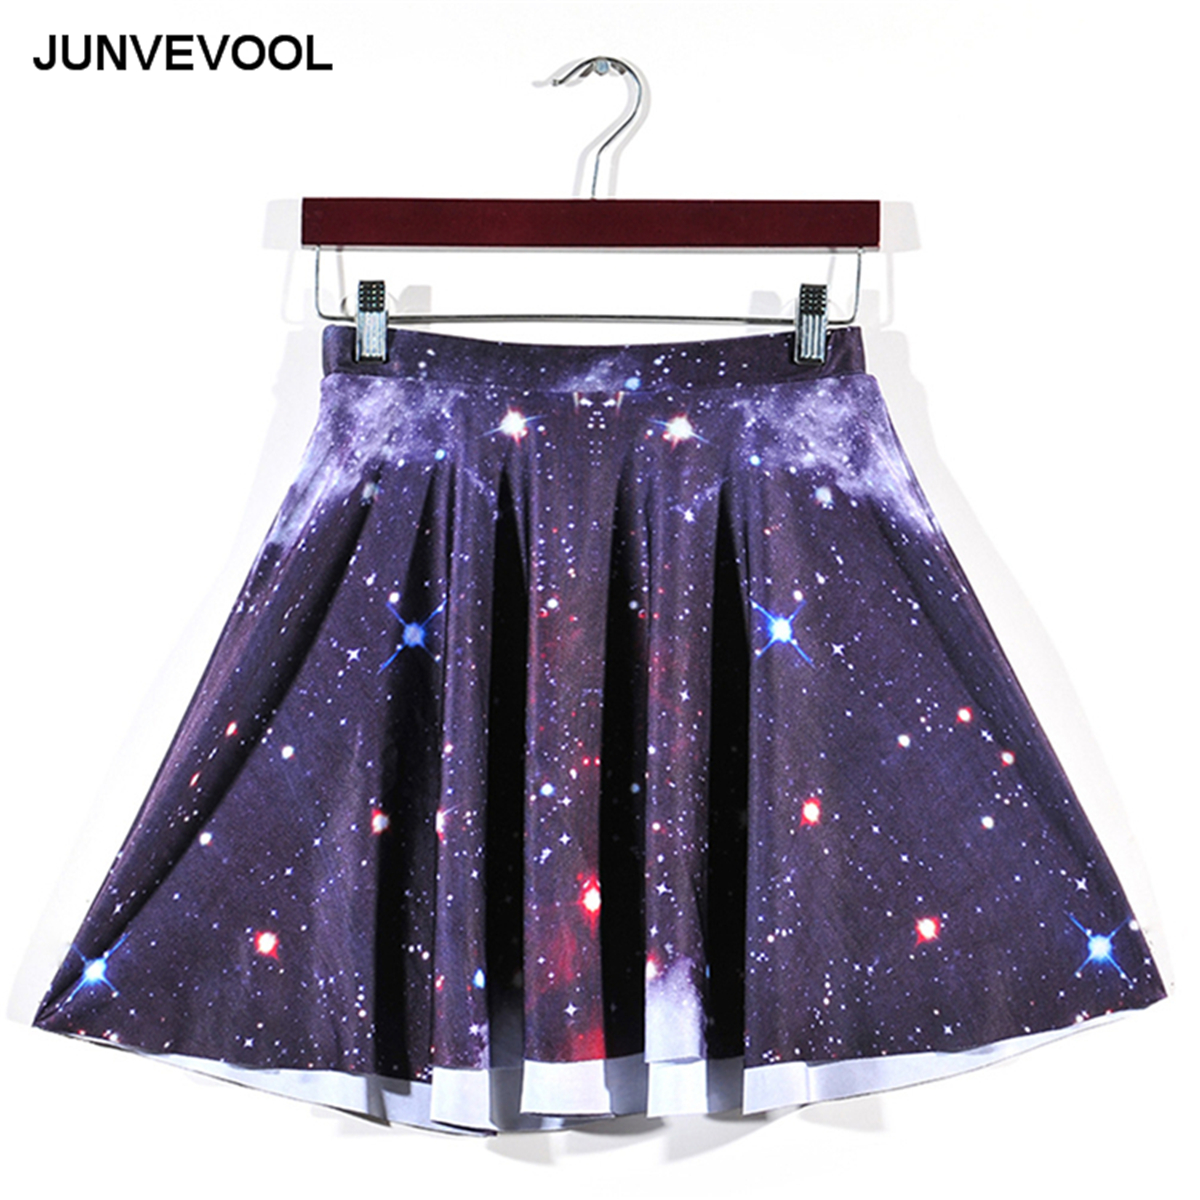 Sexy Black Purple Skirt Women Vogue Hot Sale Club Fashion Clothing Office Fit Work Ladies Skirts Mini Beach Girls Stylish Wear